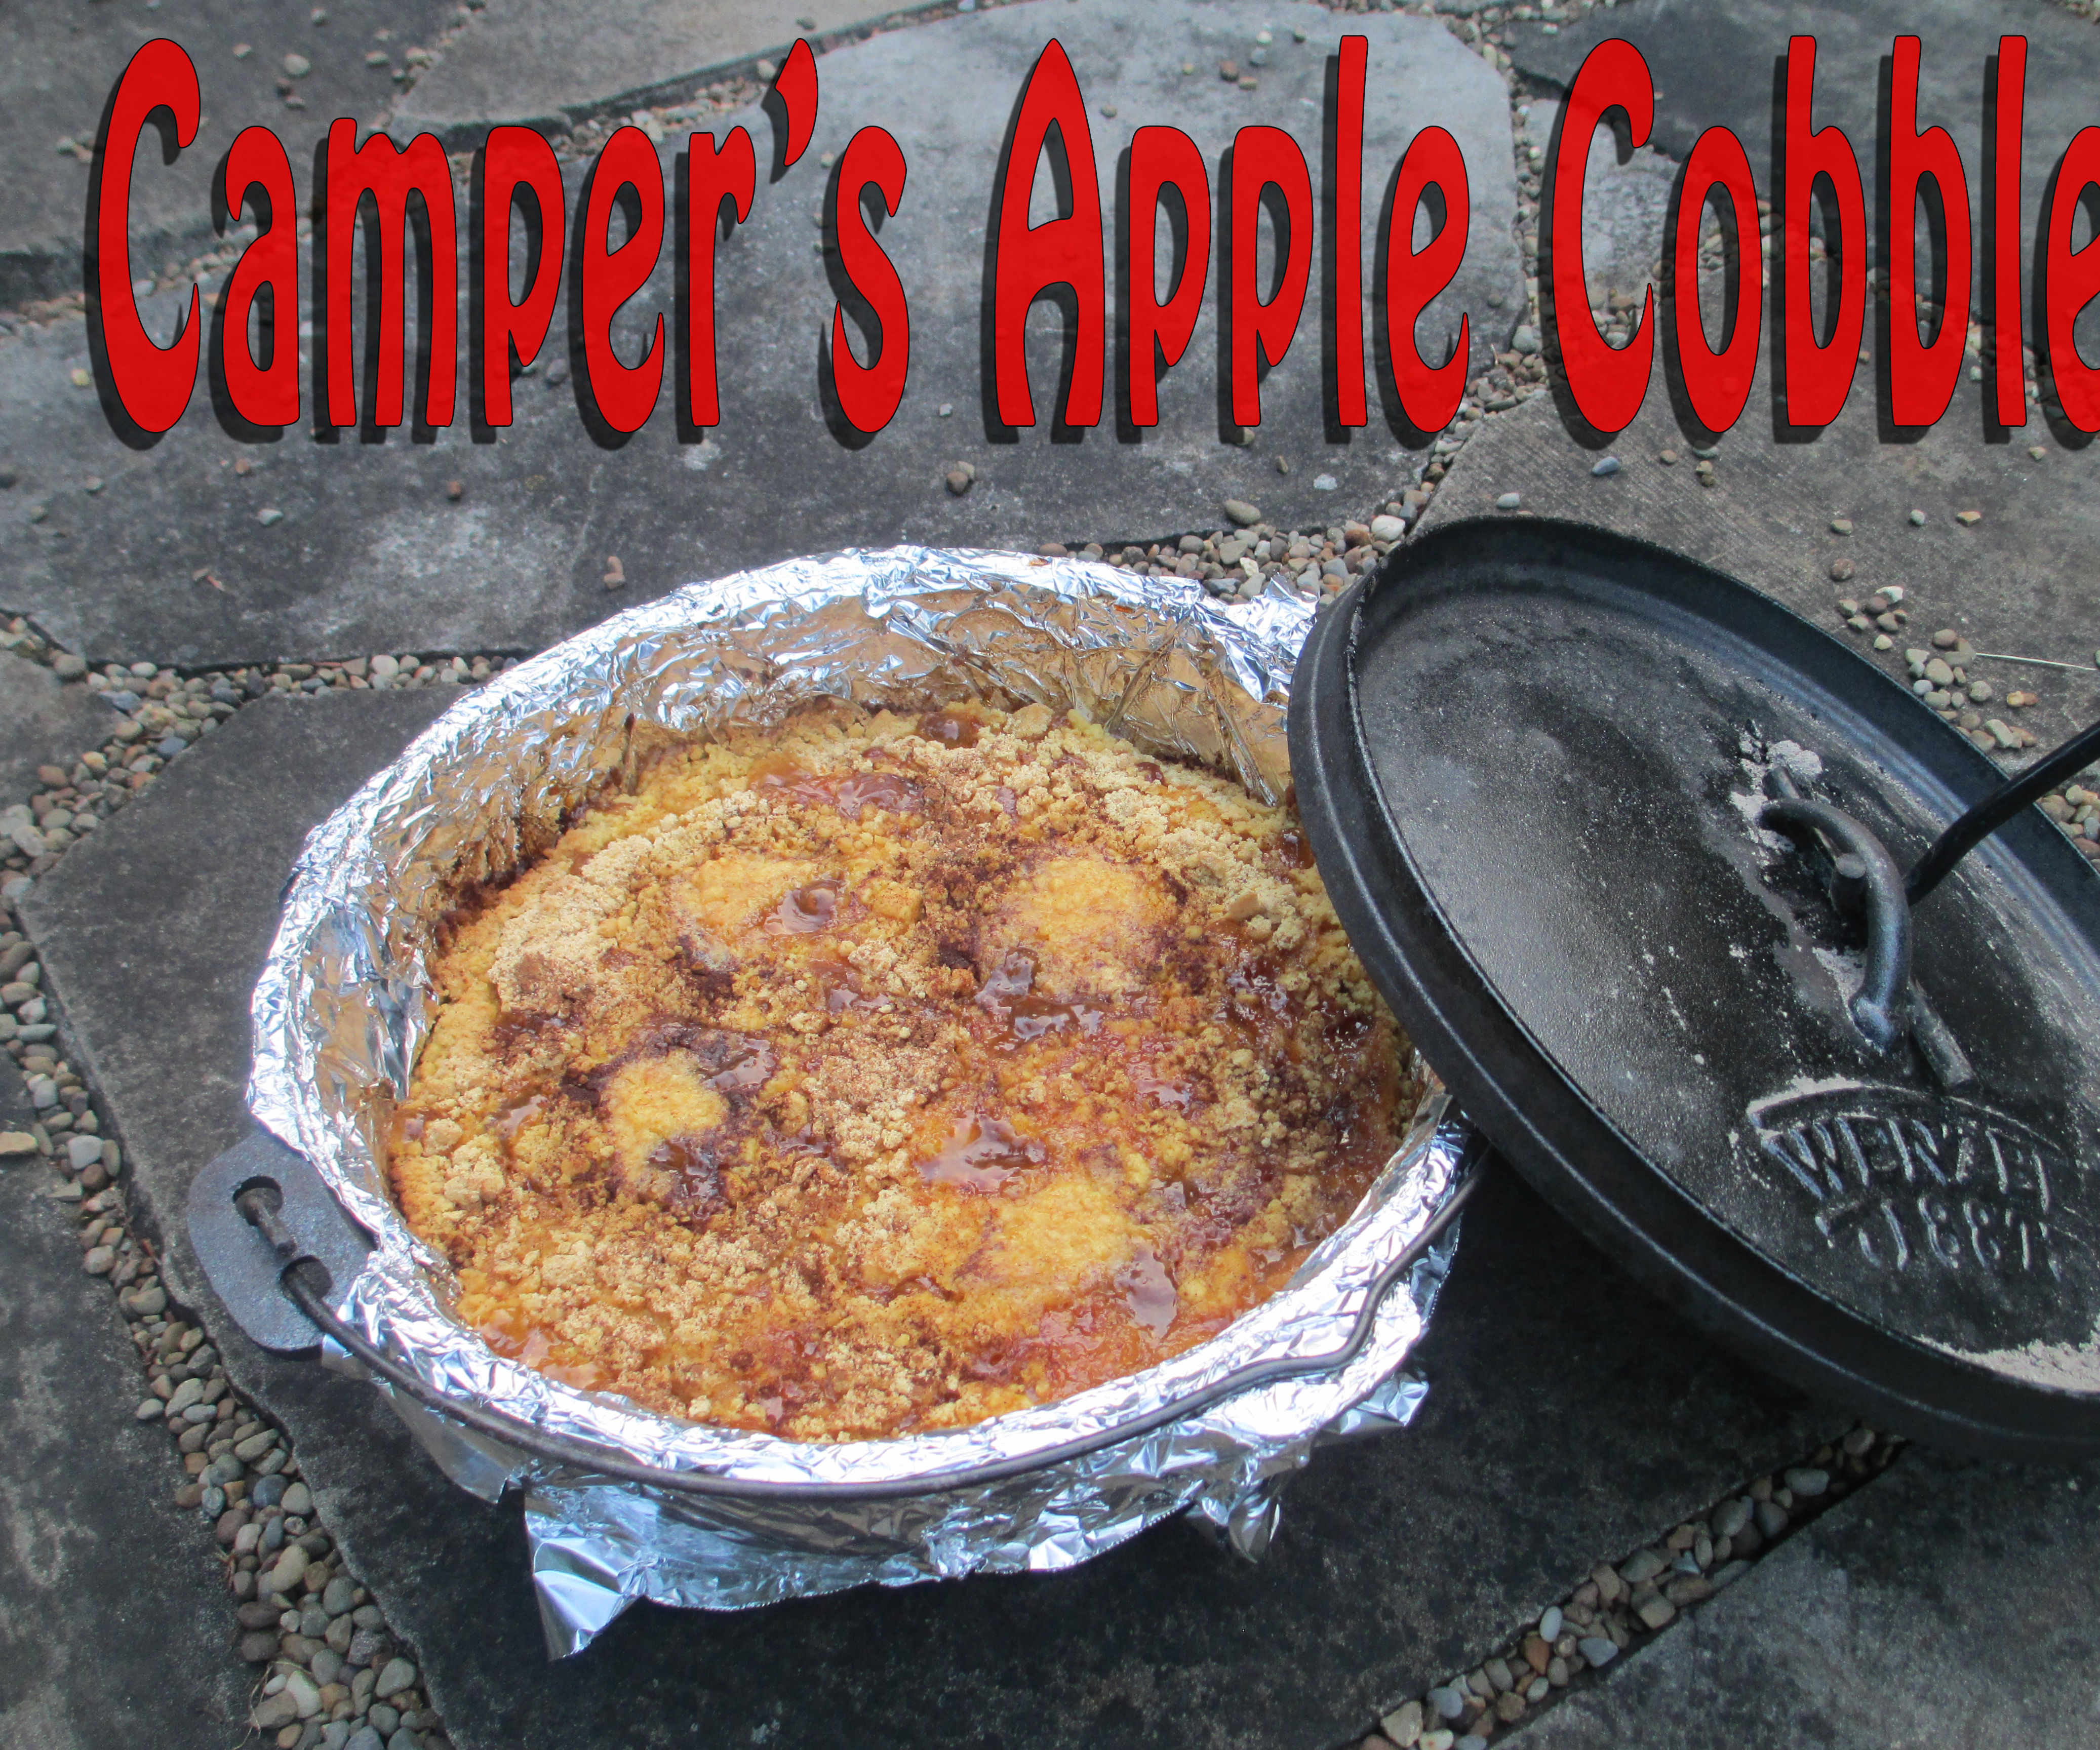 Camper S Outdoor Apple Cobbler 12 Steps With Pictures Instructables